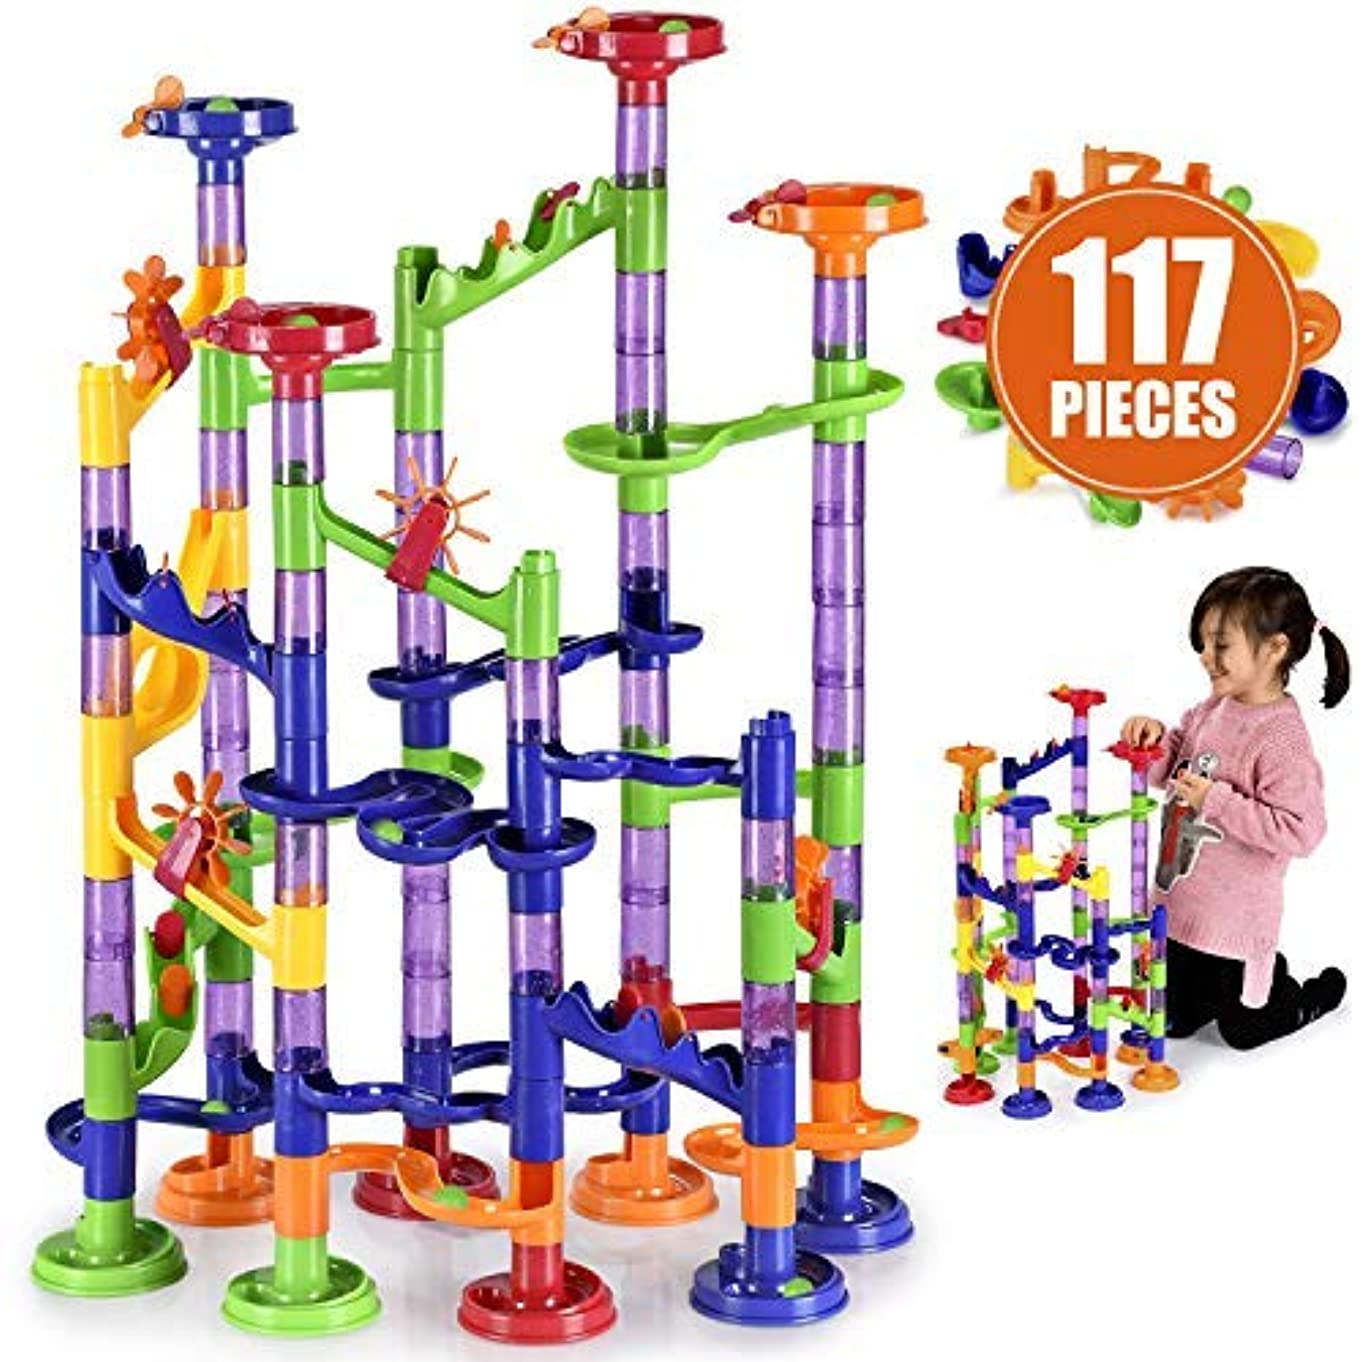 briteNway Large Marble Run Toy Set for Kids (117-Piece Set) Glass Balls, Plastic Rails, and DIY Building Play Pieces | Create Fun, Colorful Mazes for Kids, Teens, Adults | Beginner